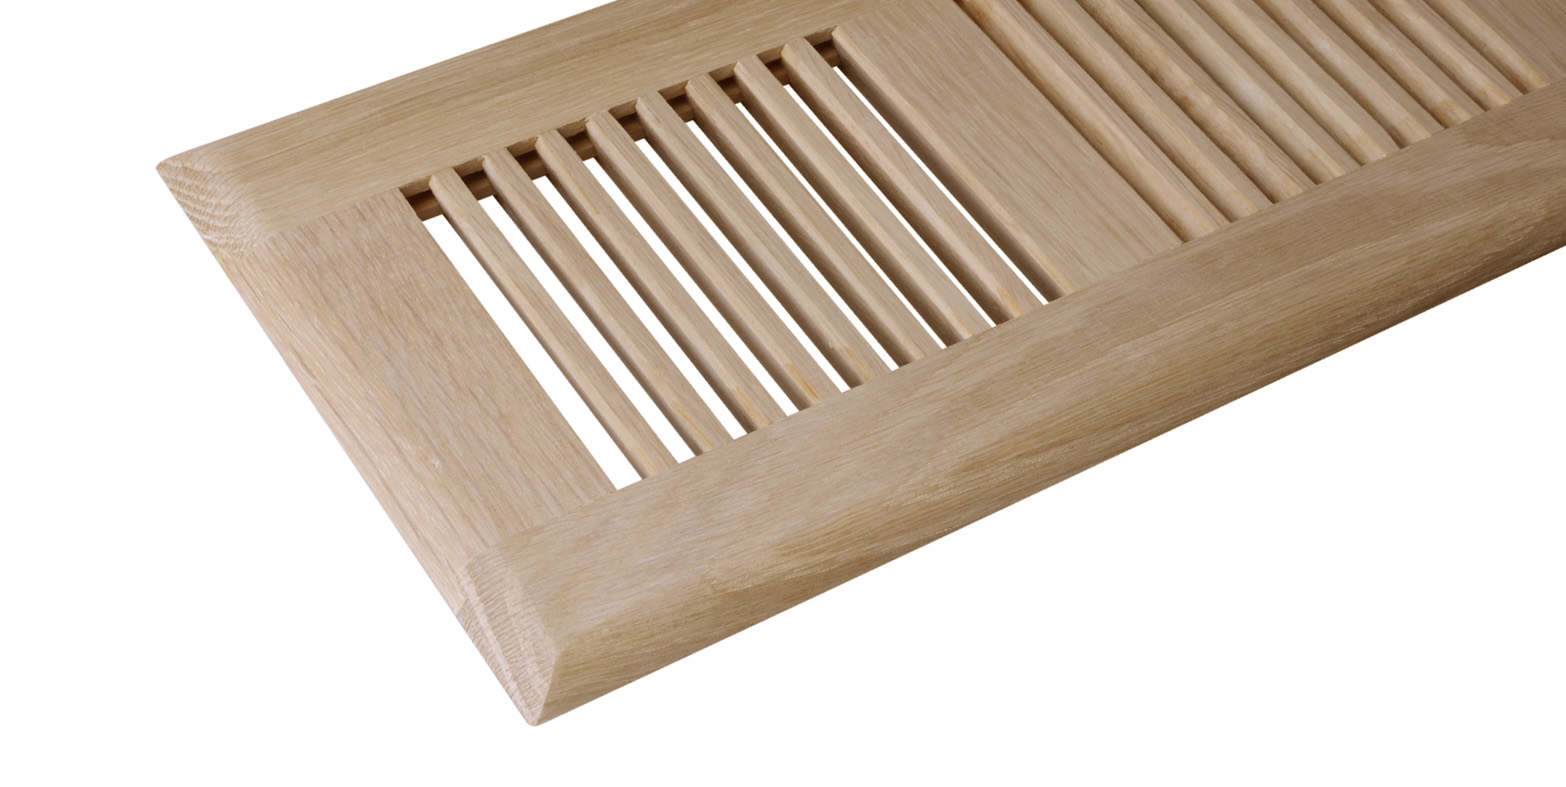 drop-in hardwood an bamboo vents